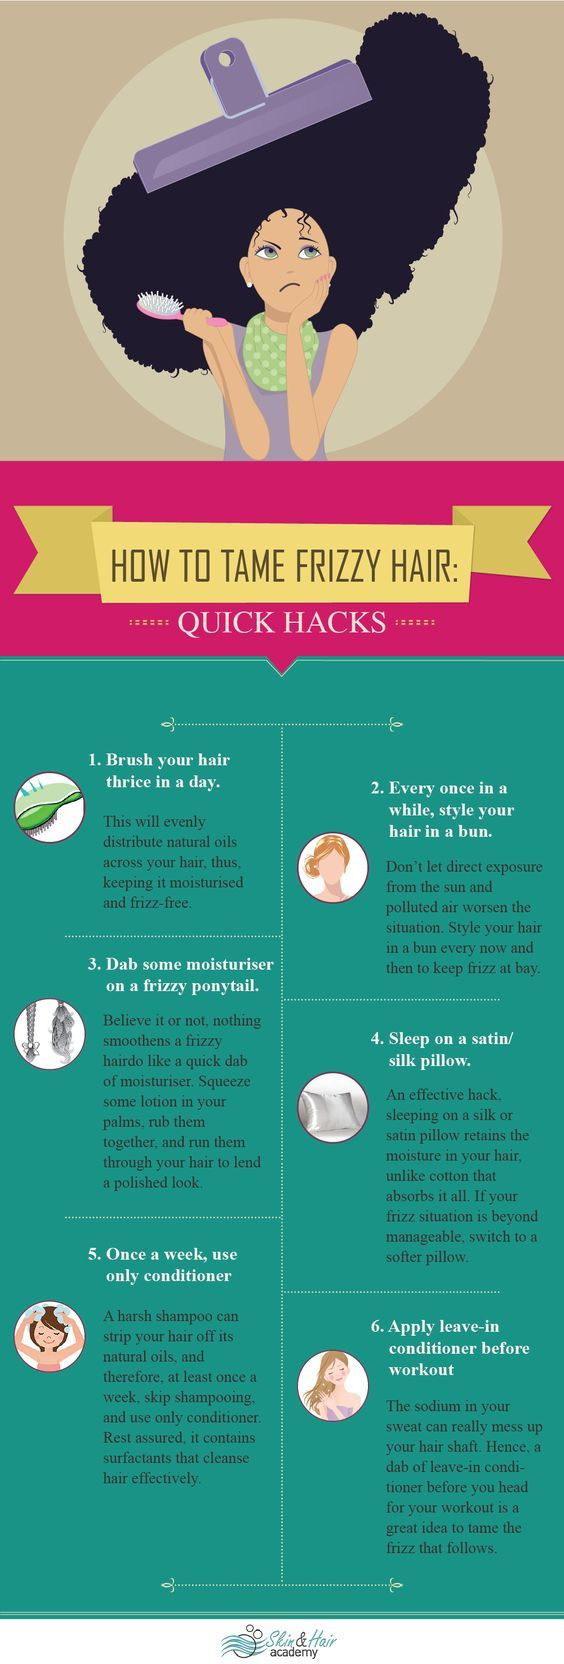 Professional hair dryers reduce frizzy hair.